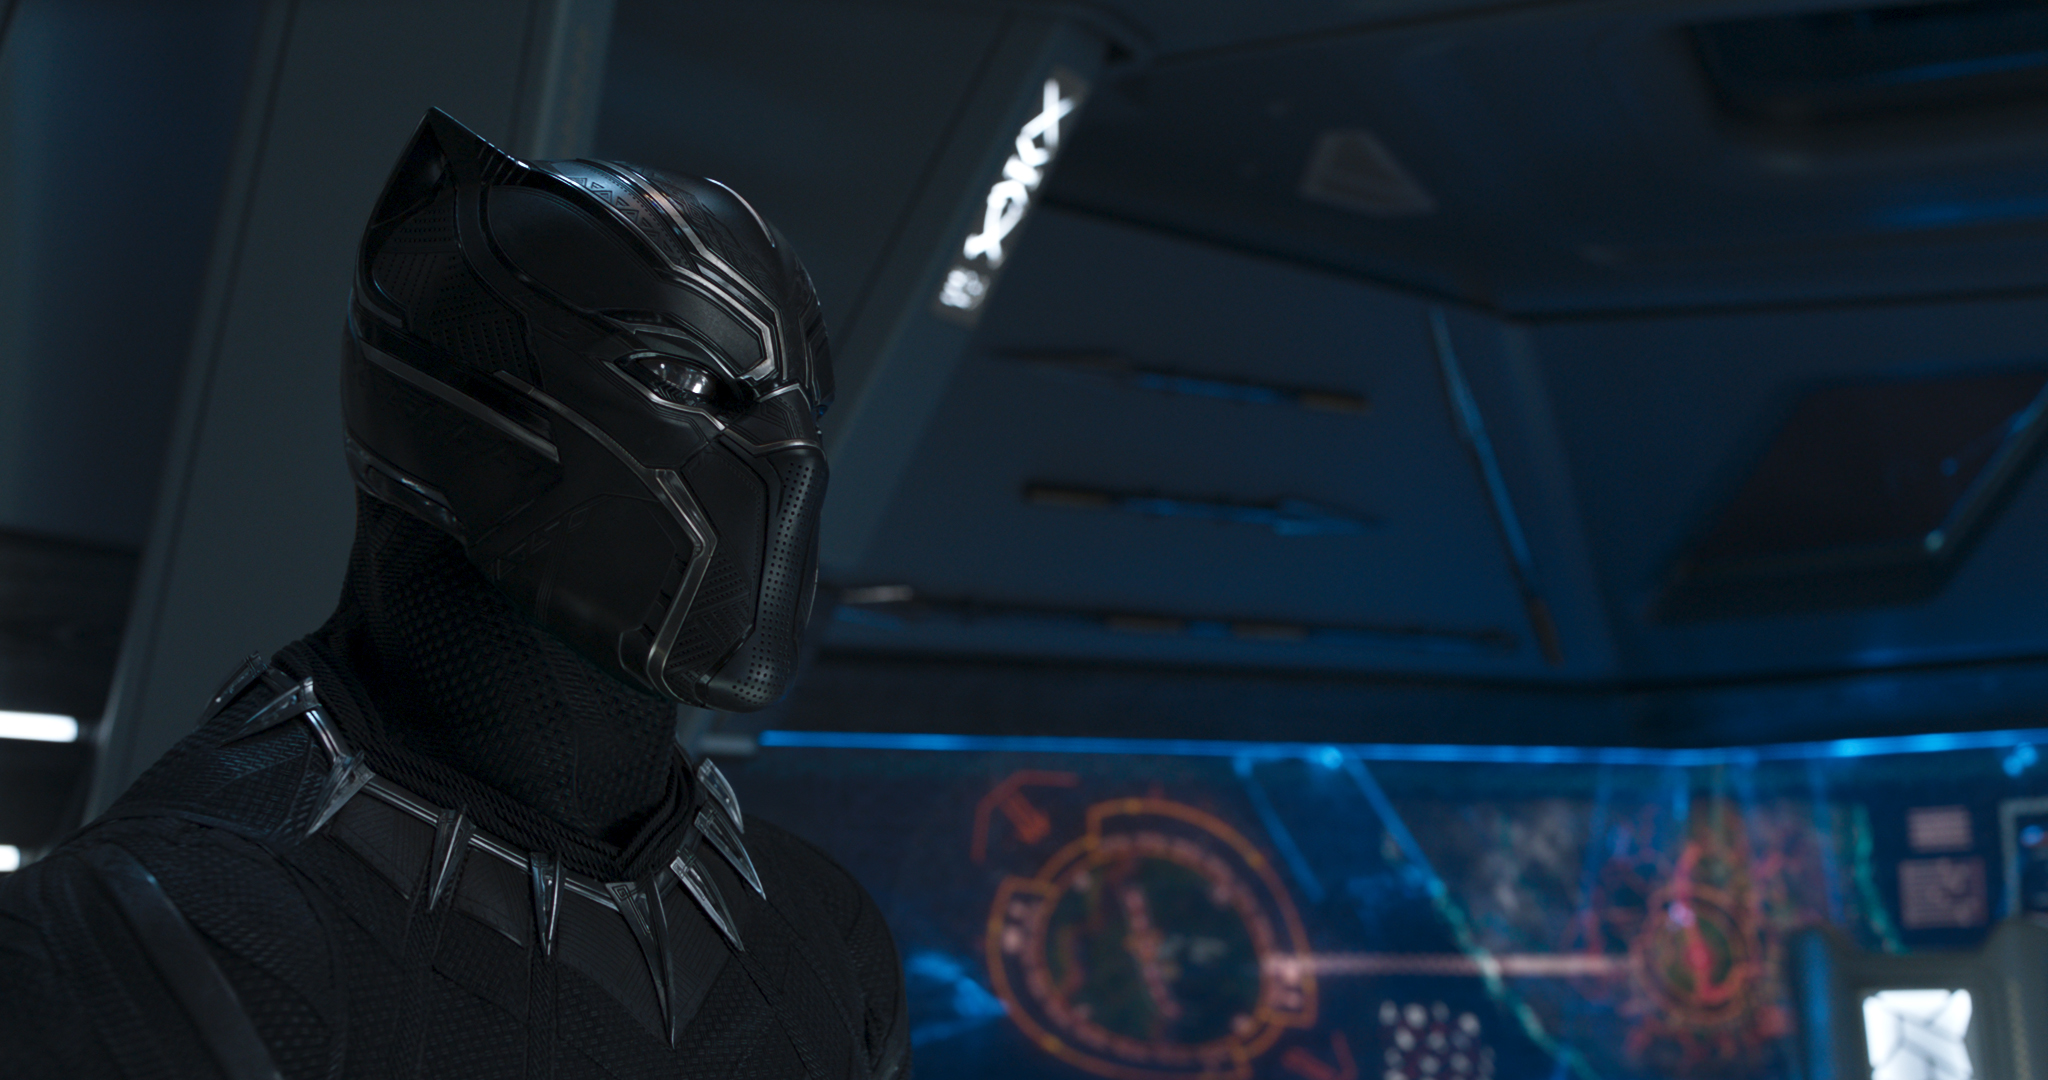 Black Panther is one of the films being added to Disney Plus in March